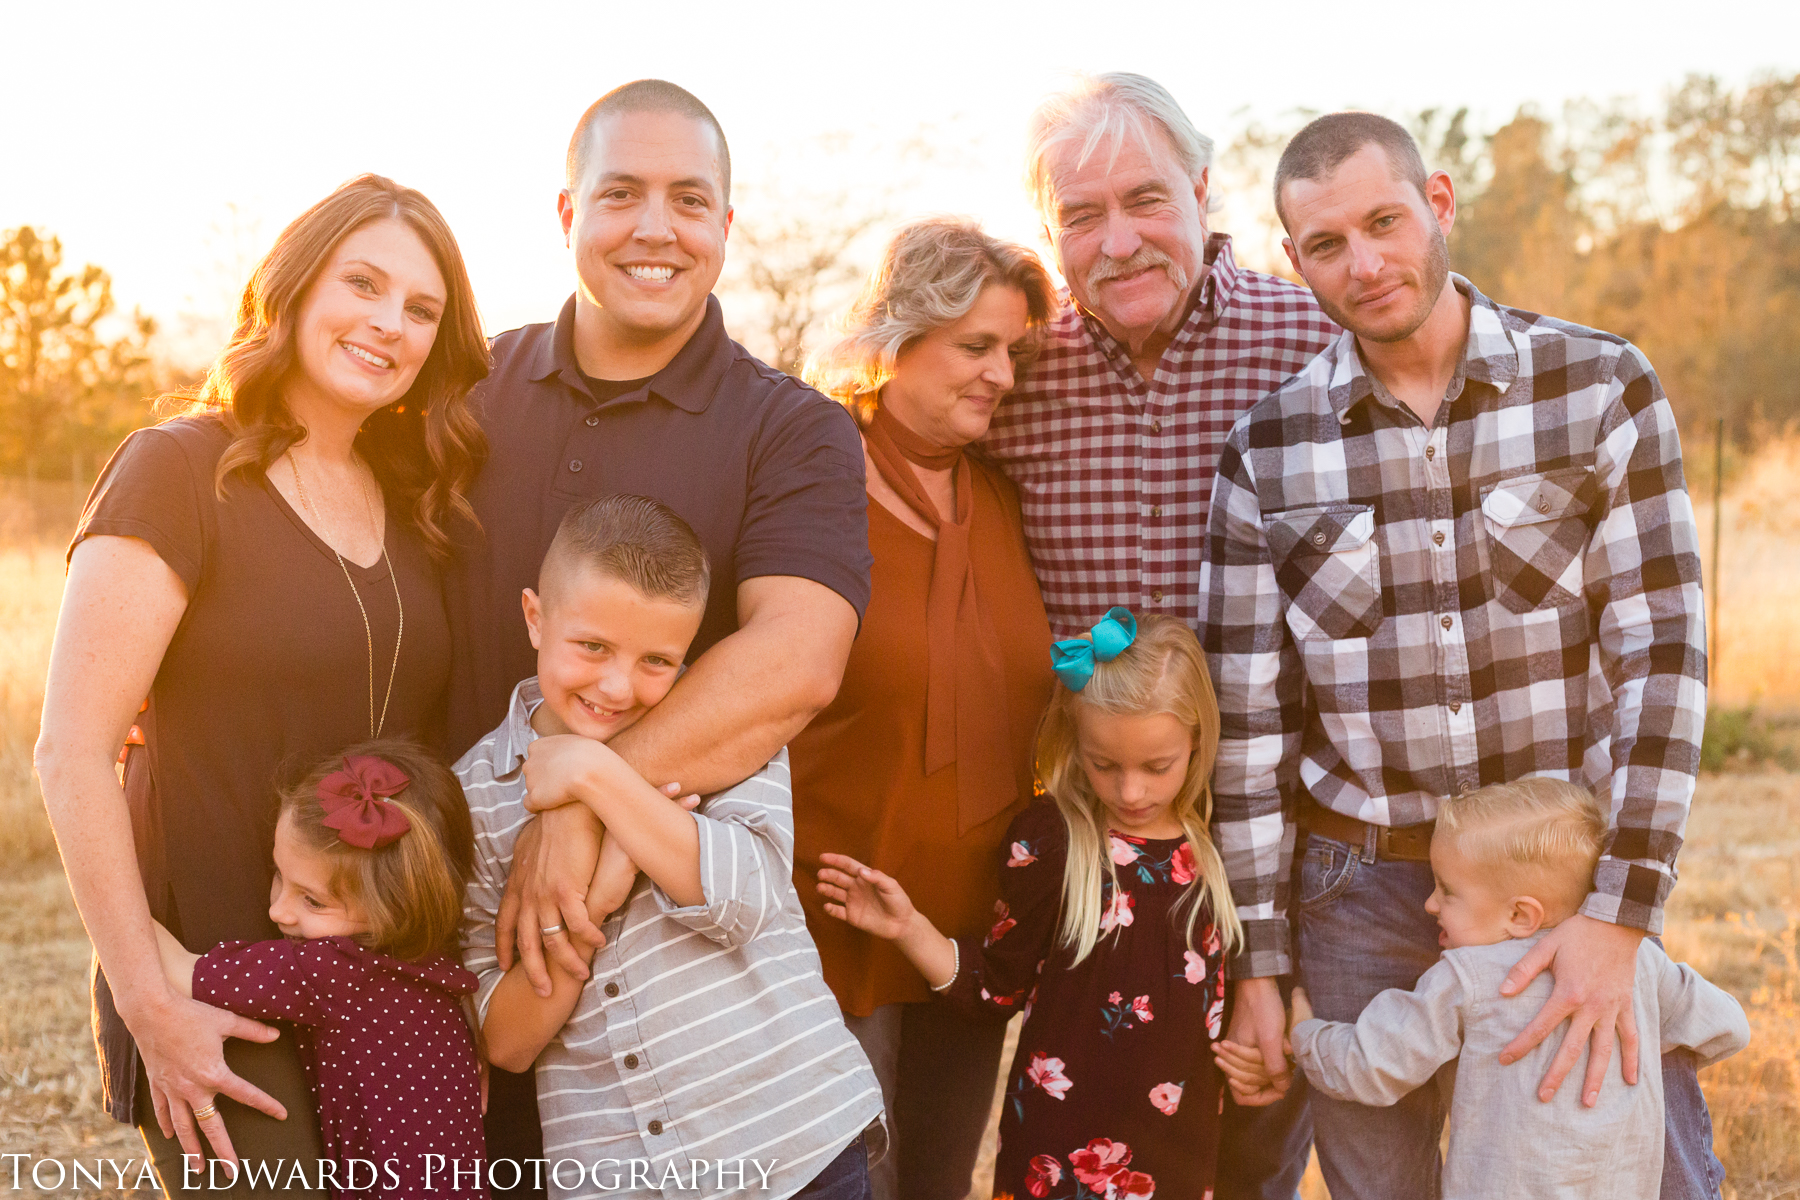 Tonya Edwards | Oroville Family Photographer | extended family at golden hour